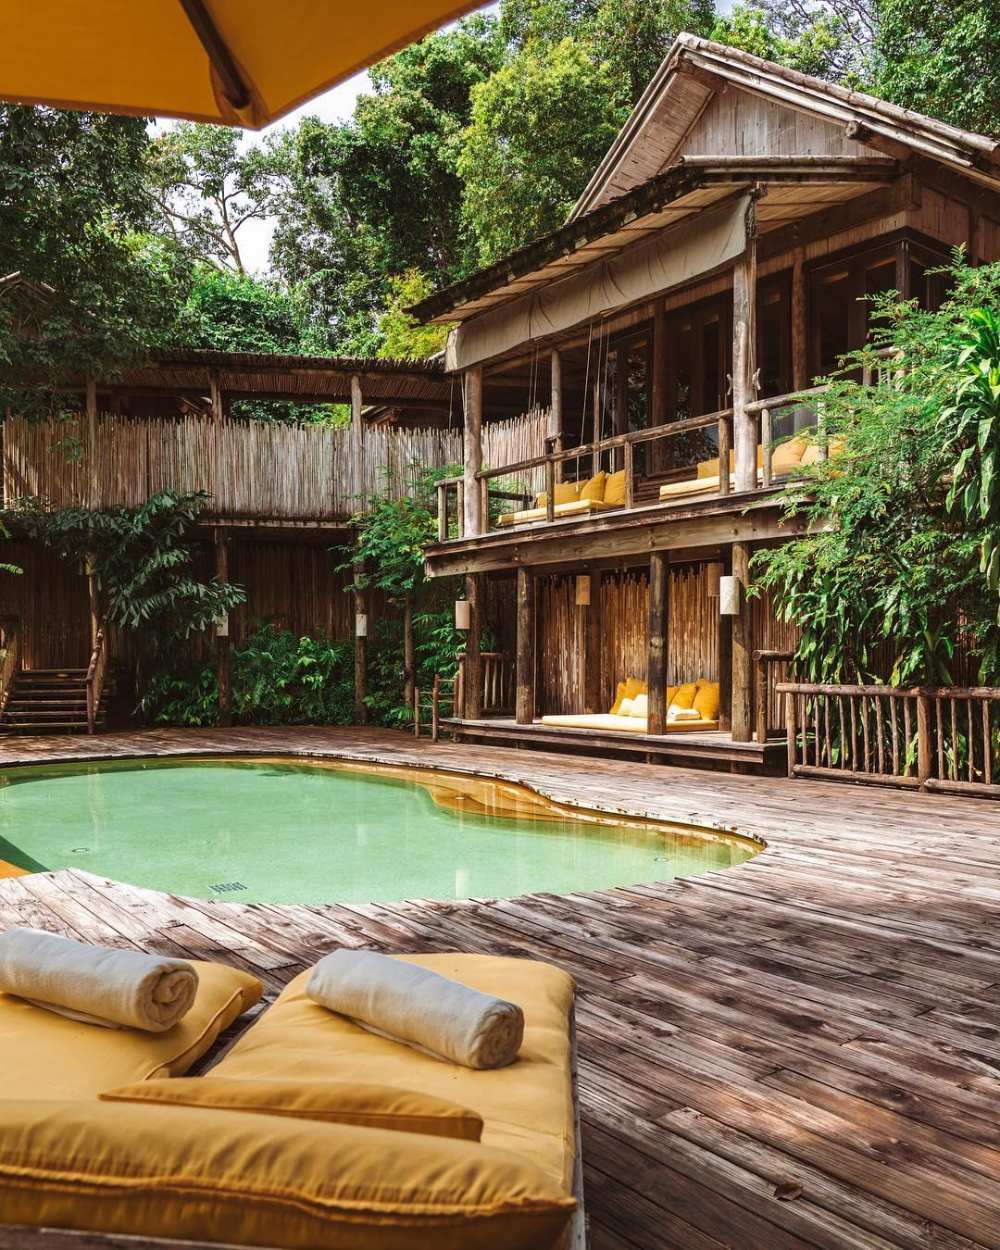 31+ Of The World's Best Tropical Getaways To Escape To